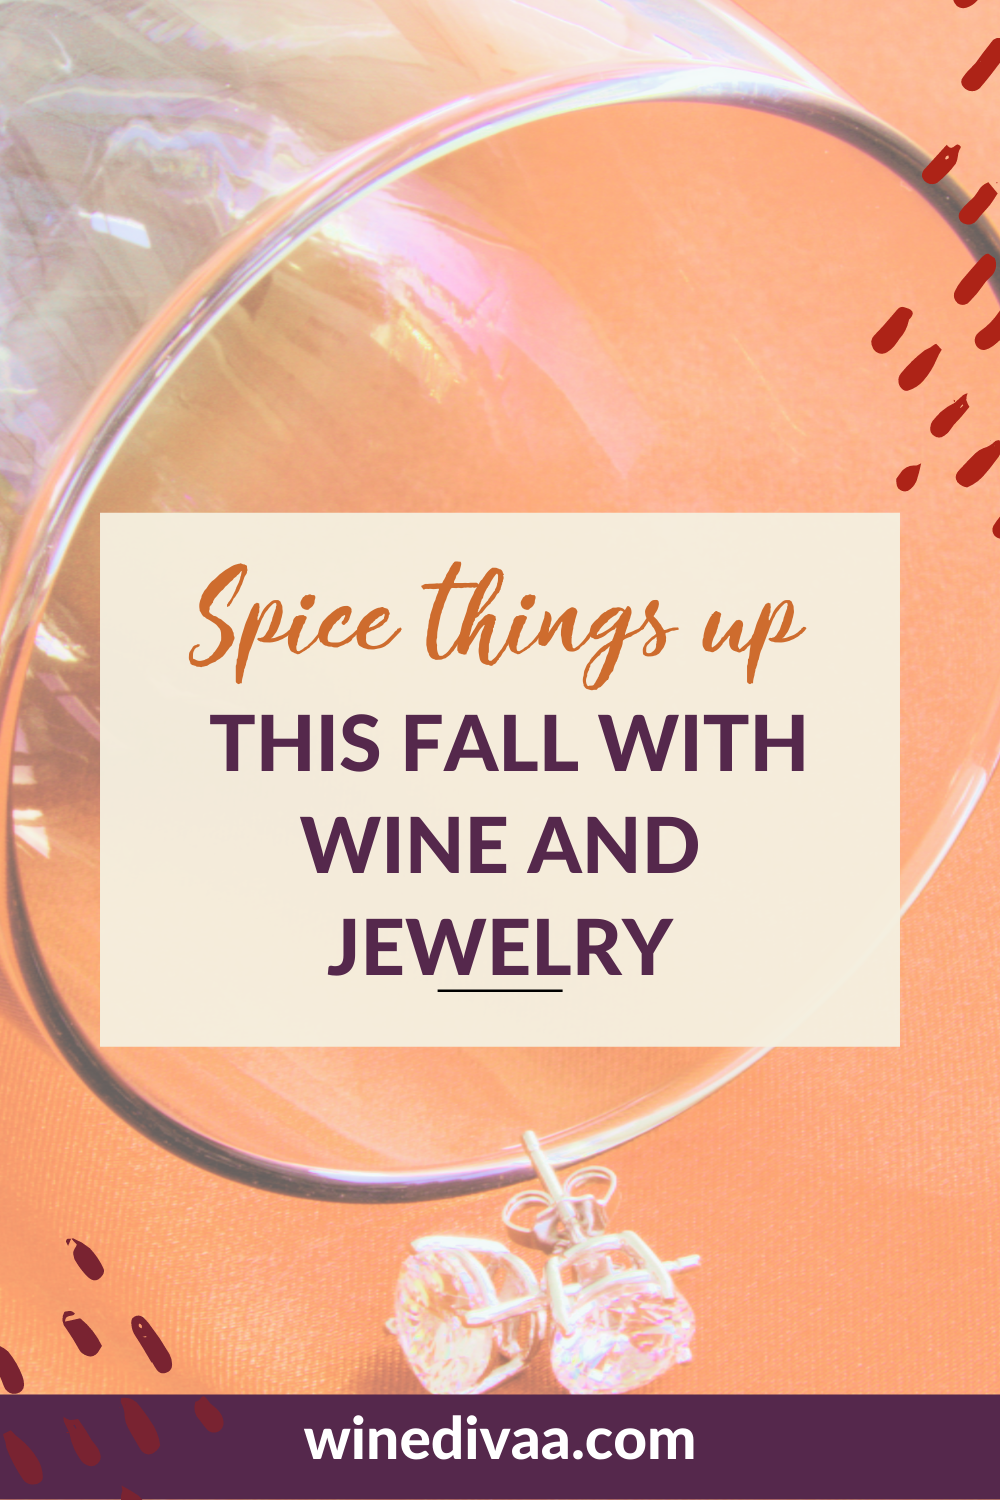 Spice Things Up This Fall with Wine and Jewelry - Pinterest